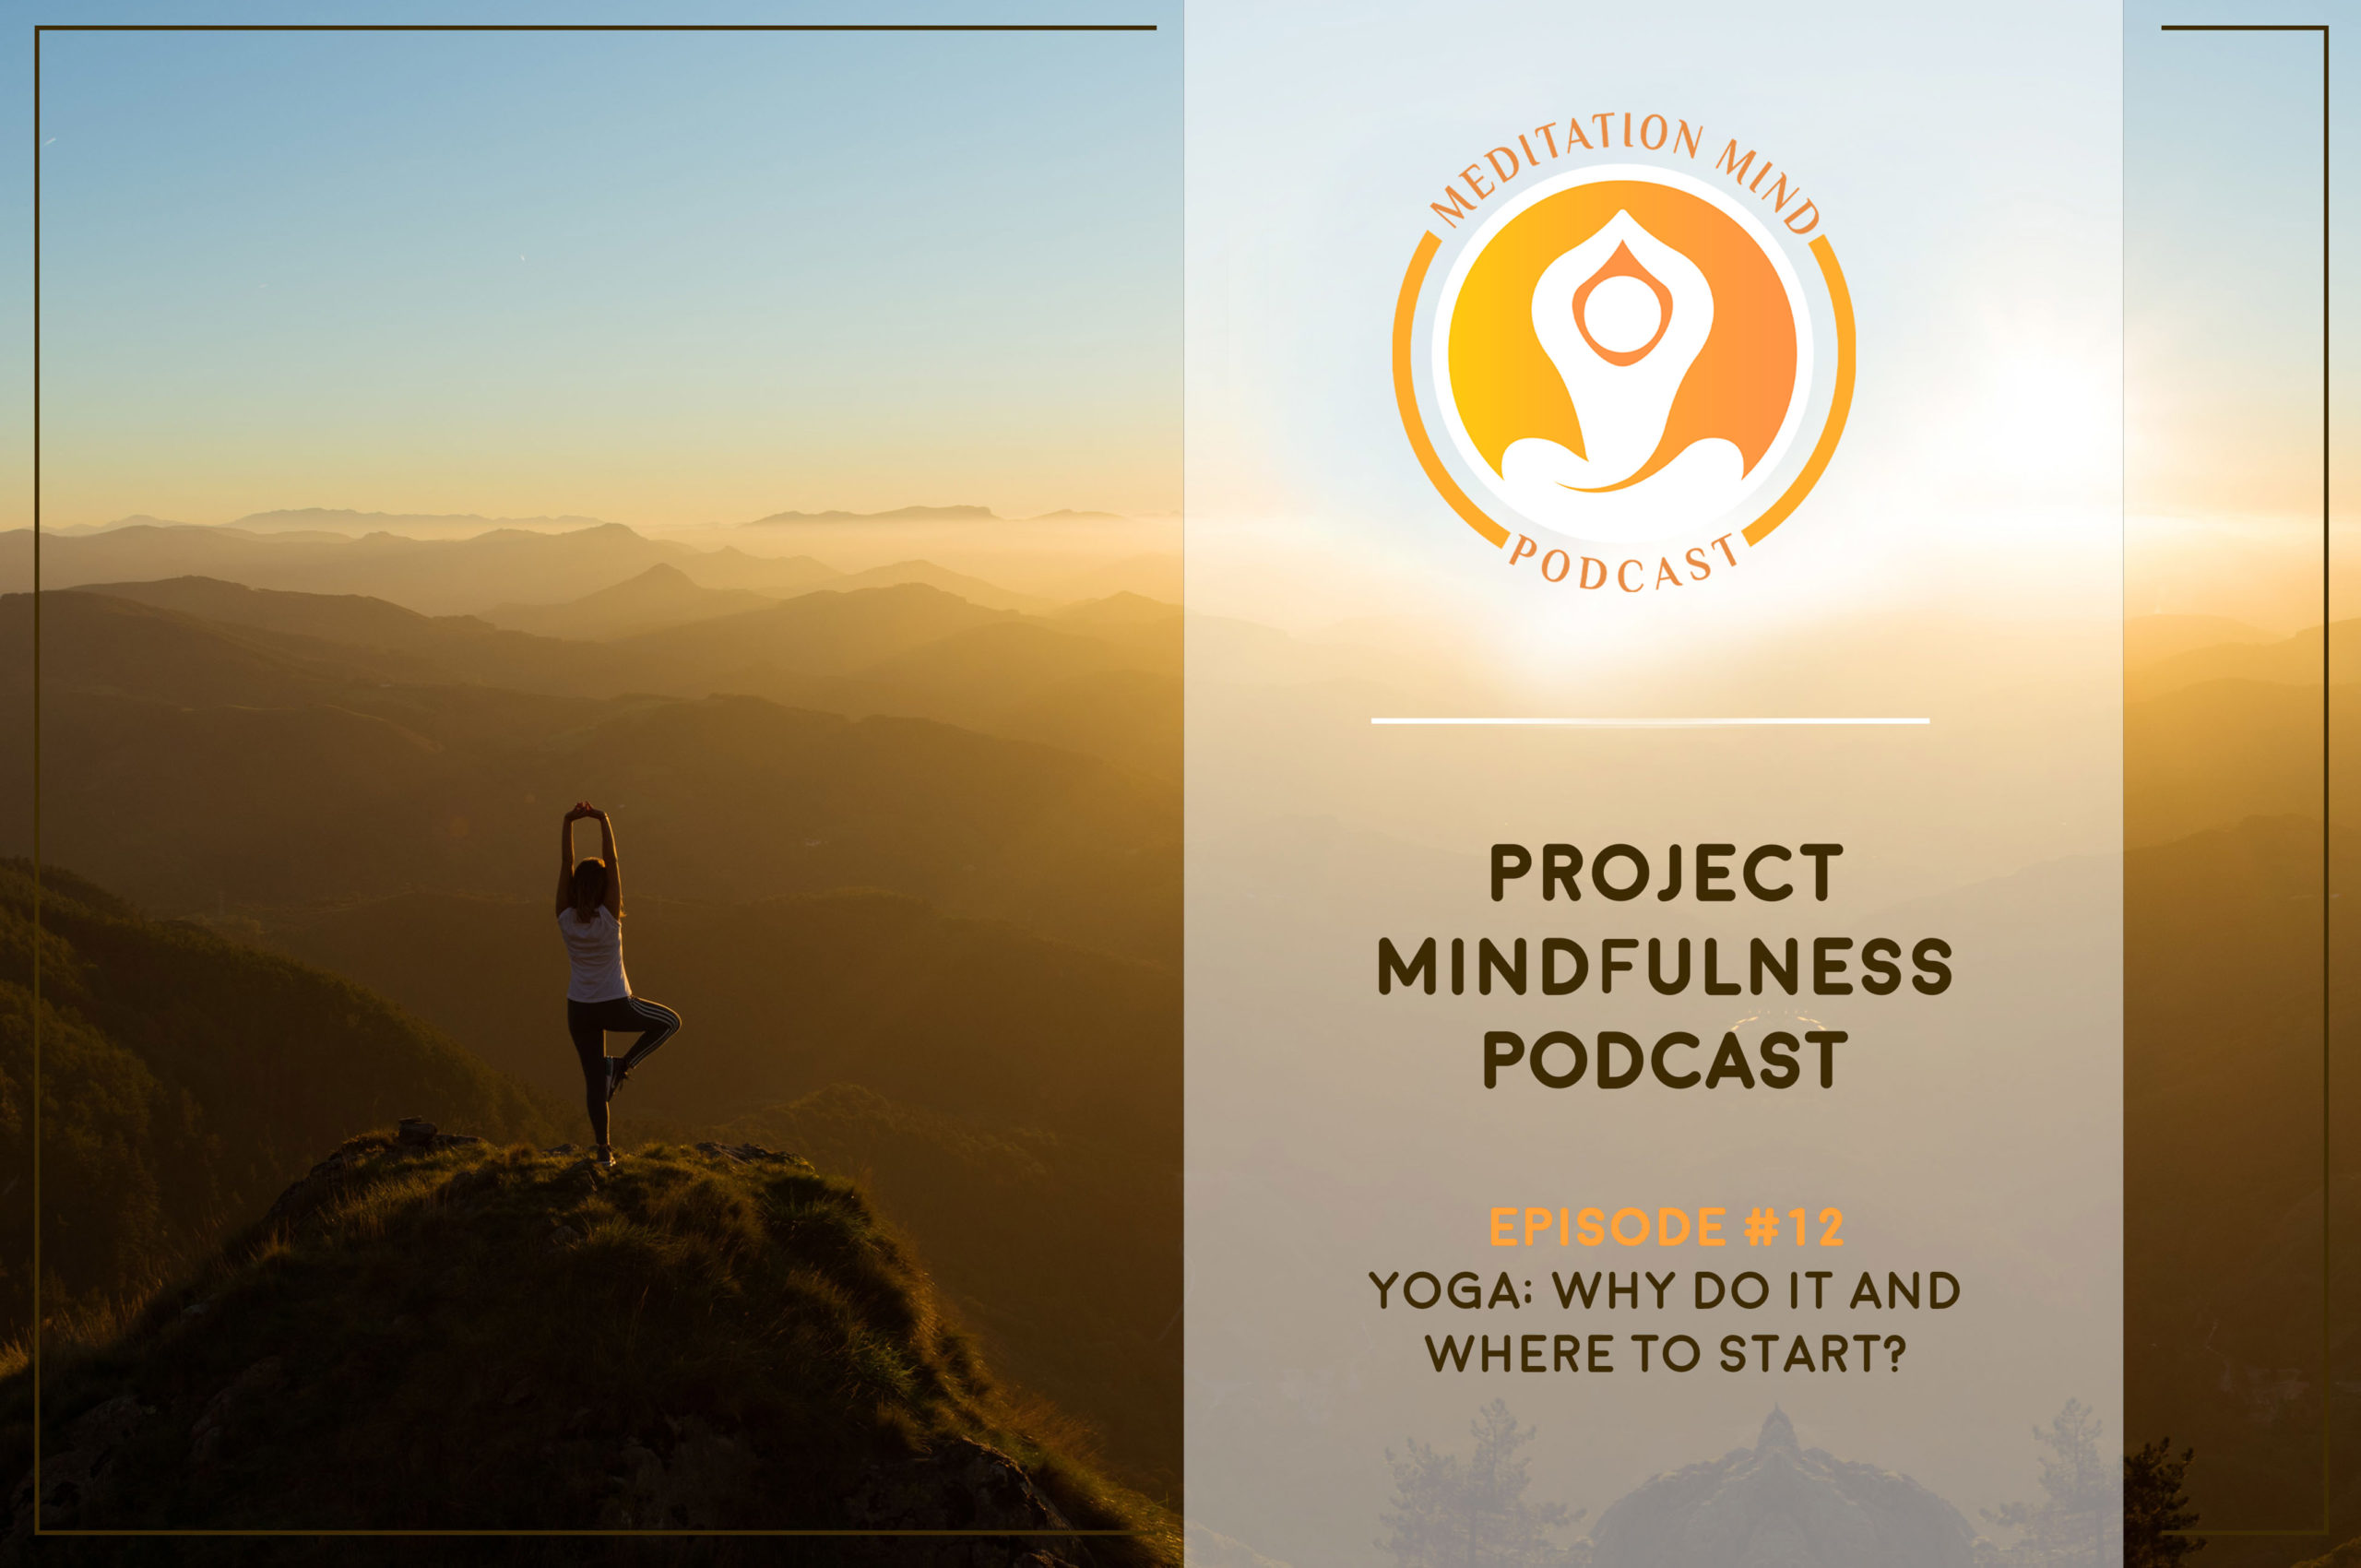 Where to start with Yoga? Why should you even start with Yoga? Find out in the episode of the podcast